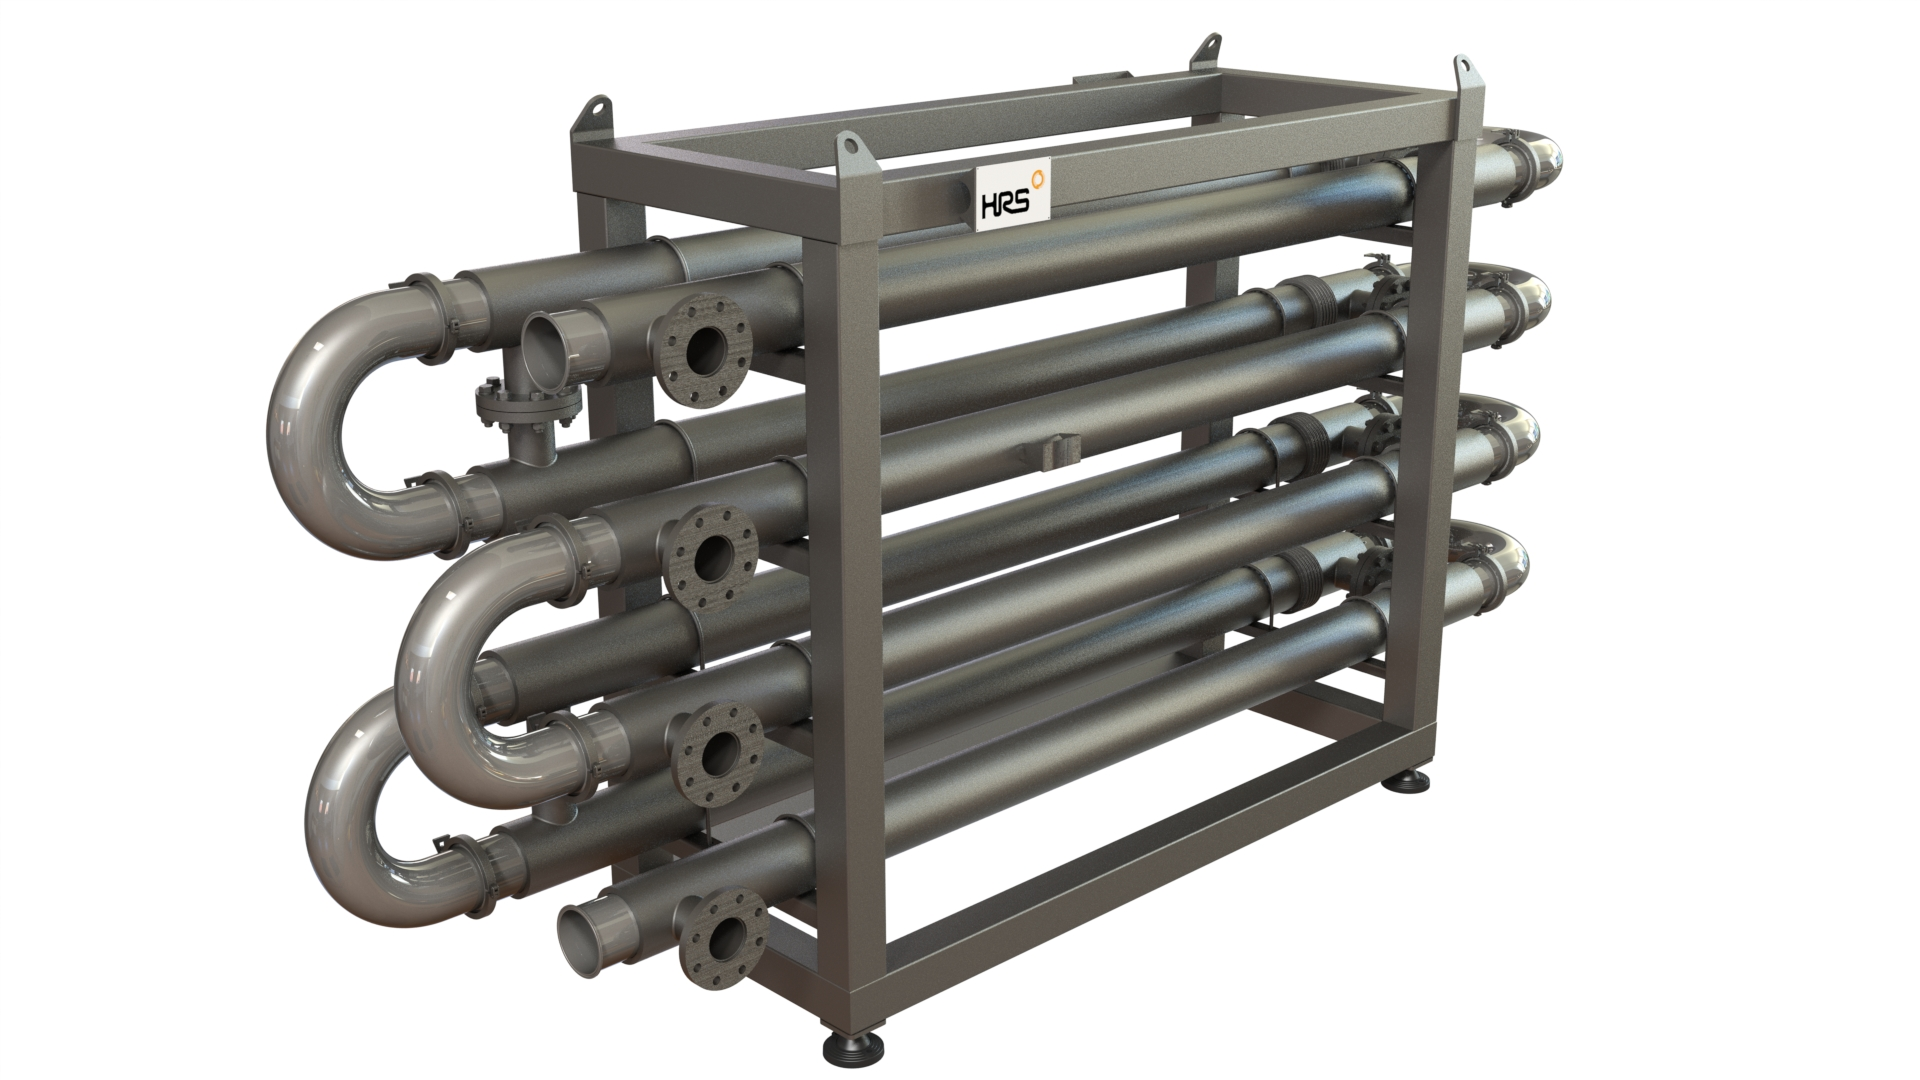 HRS DTA Series Hygienic Double Tube Heat Exchanger